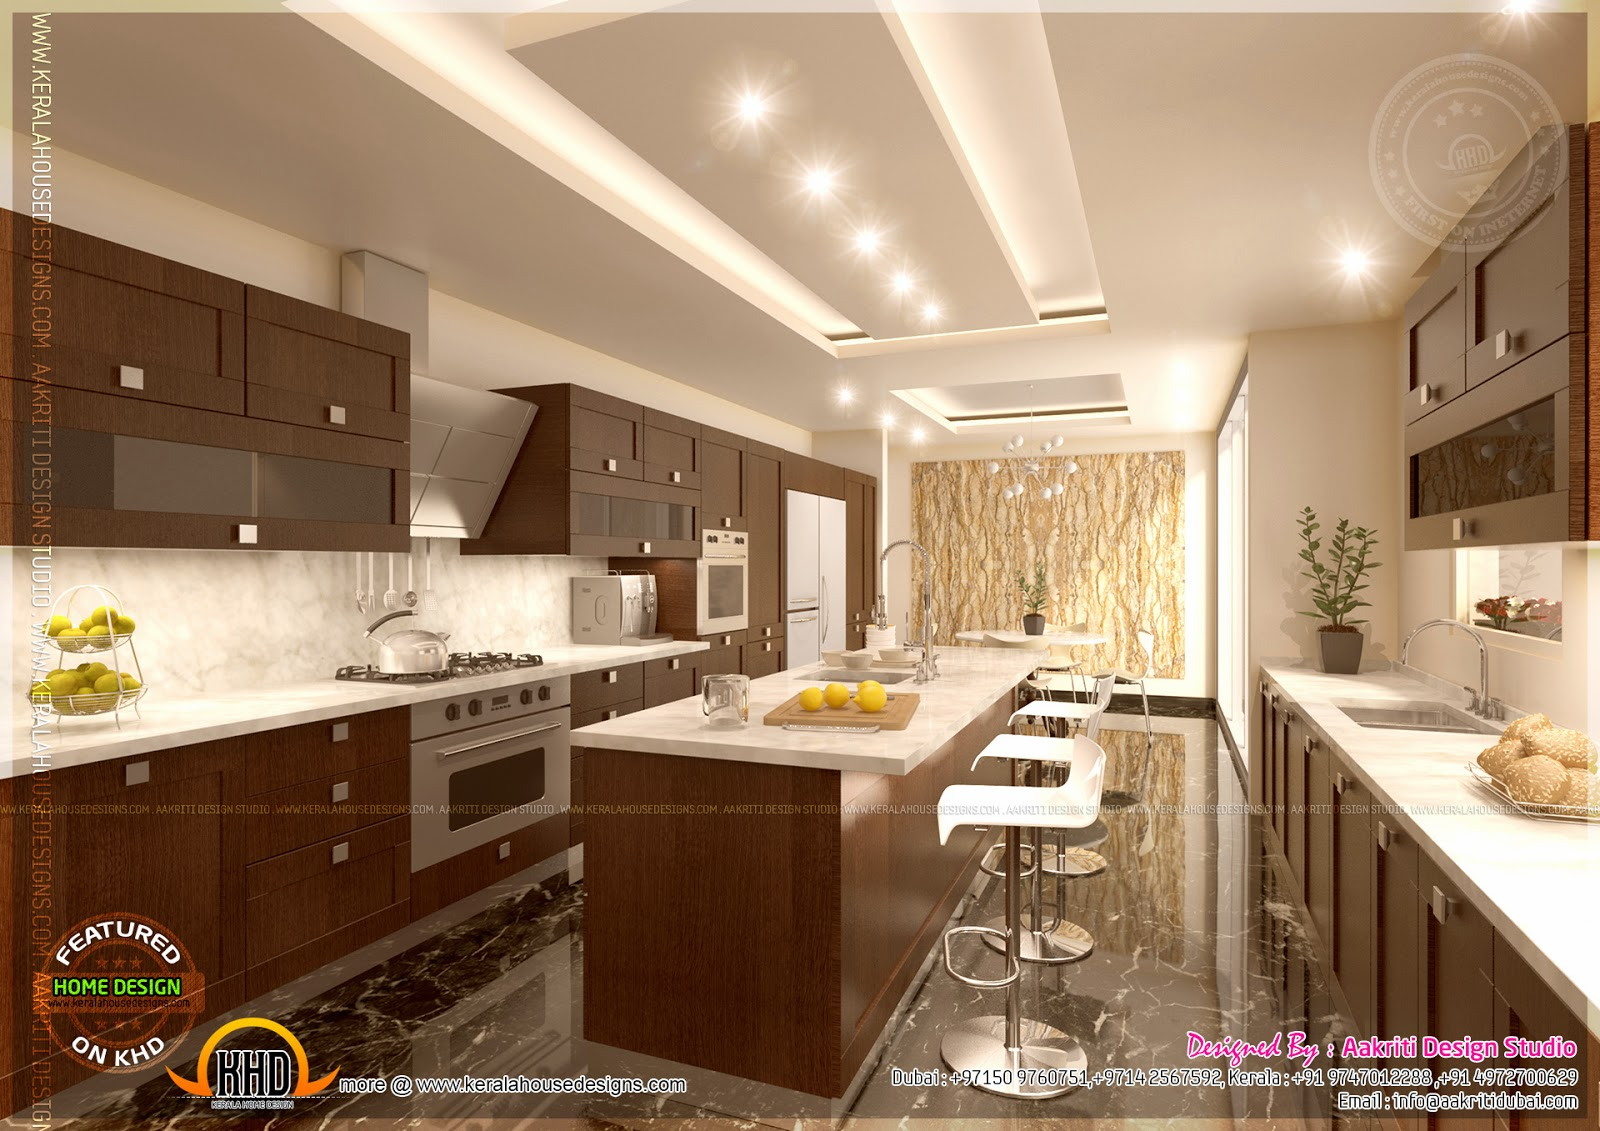 Kitchen designs by aakriti design studio kerala home Www house kitchen design